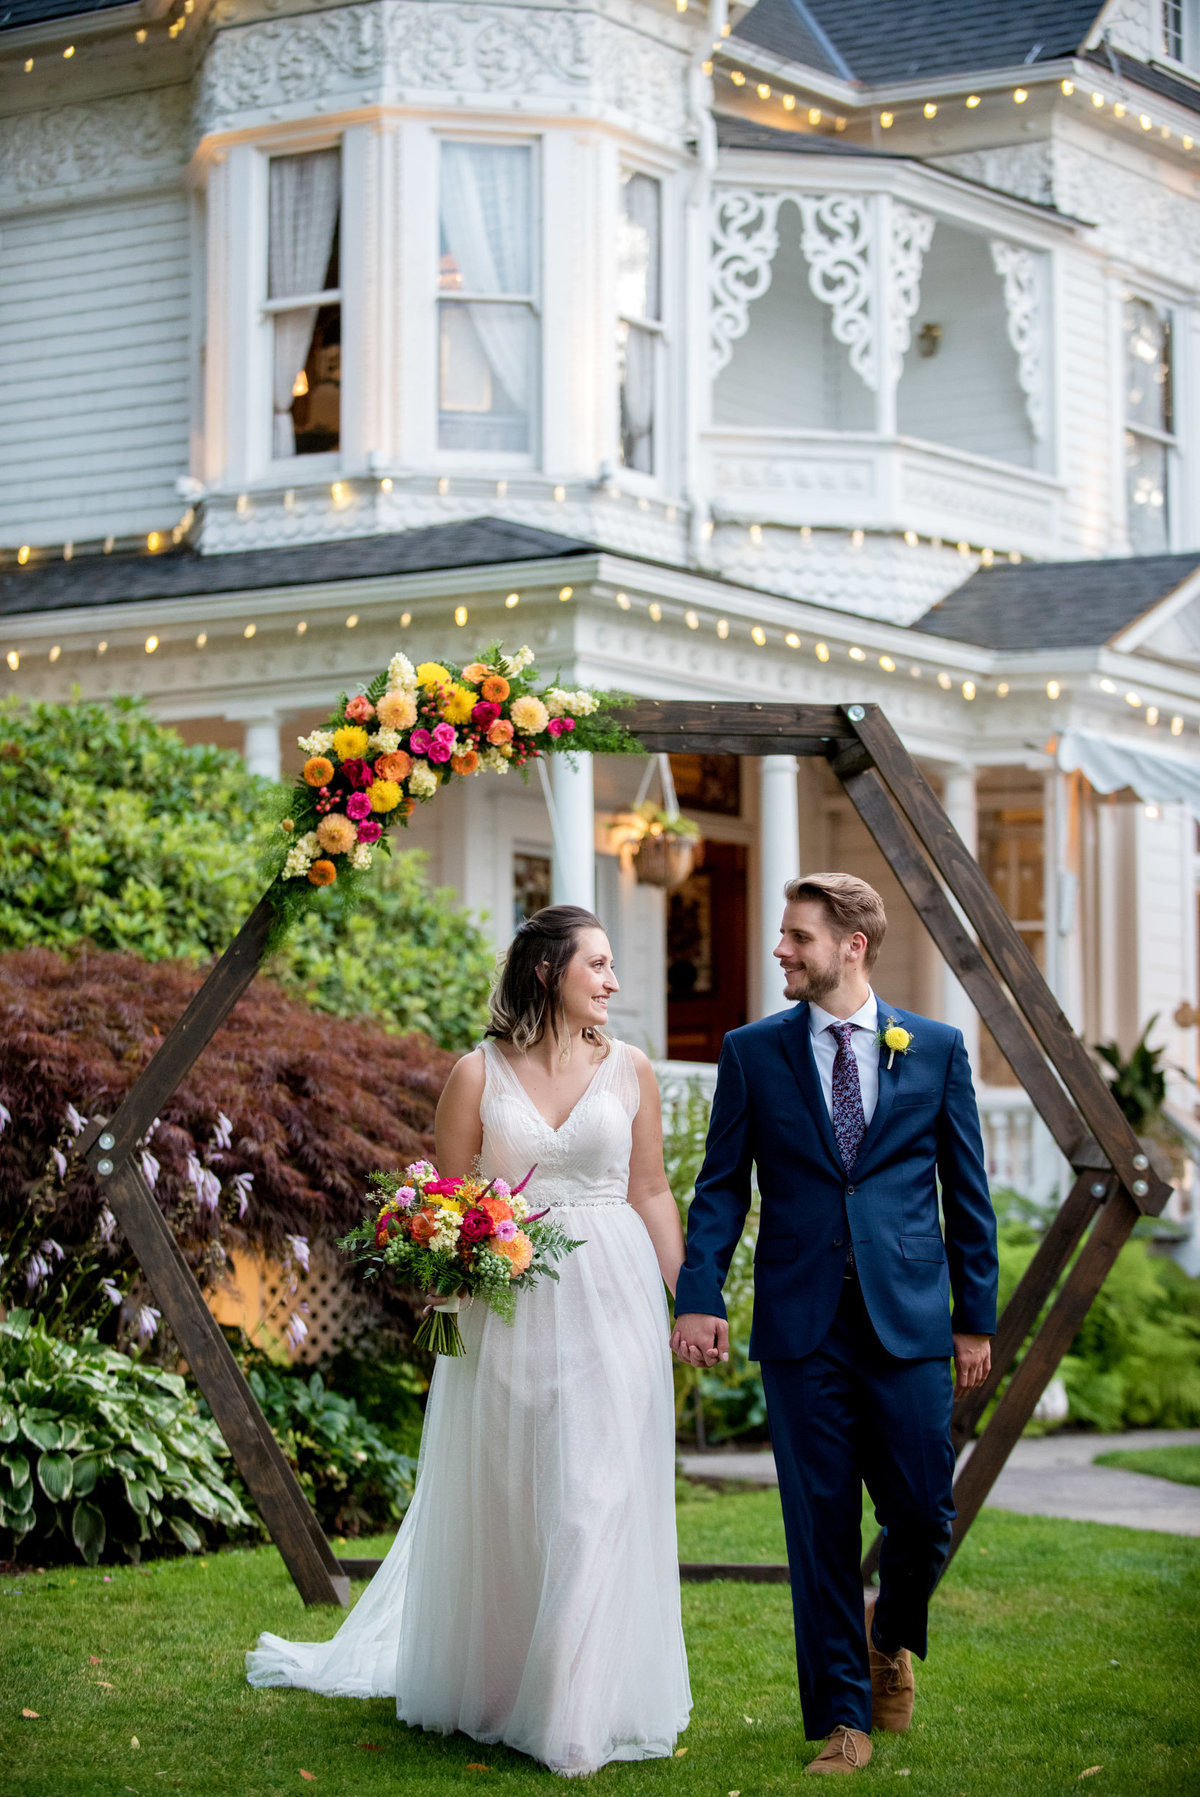 Victorian Belle Mansion Wedding190715-15